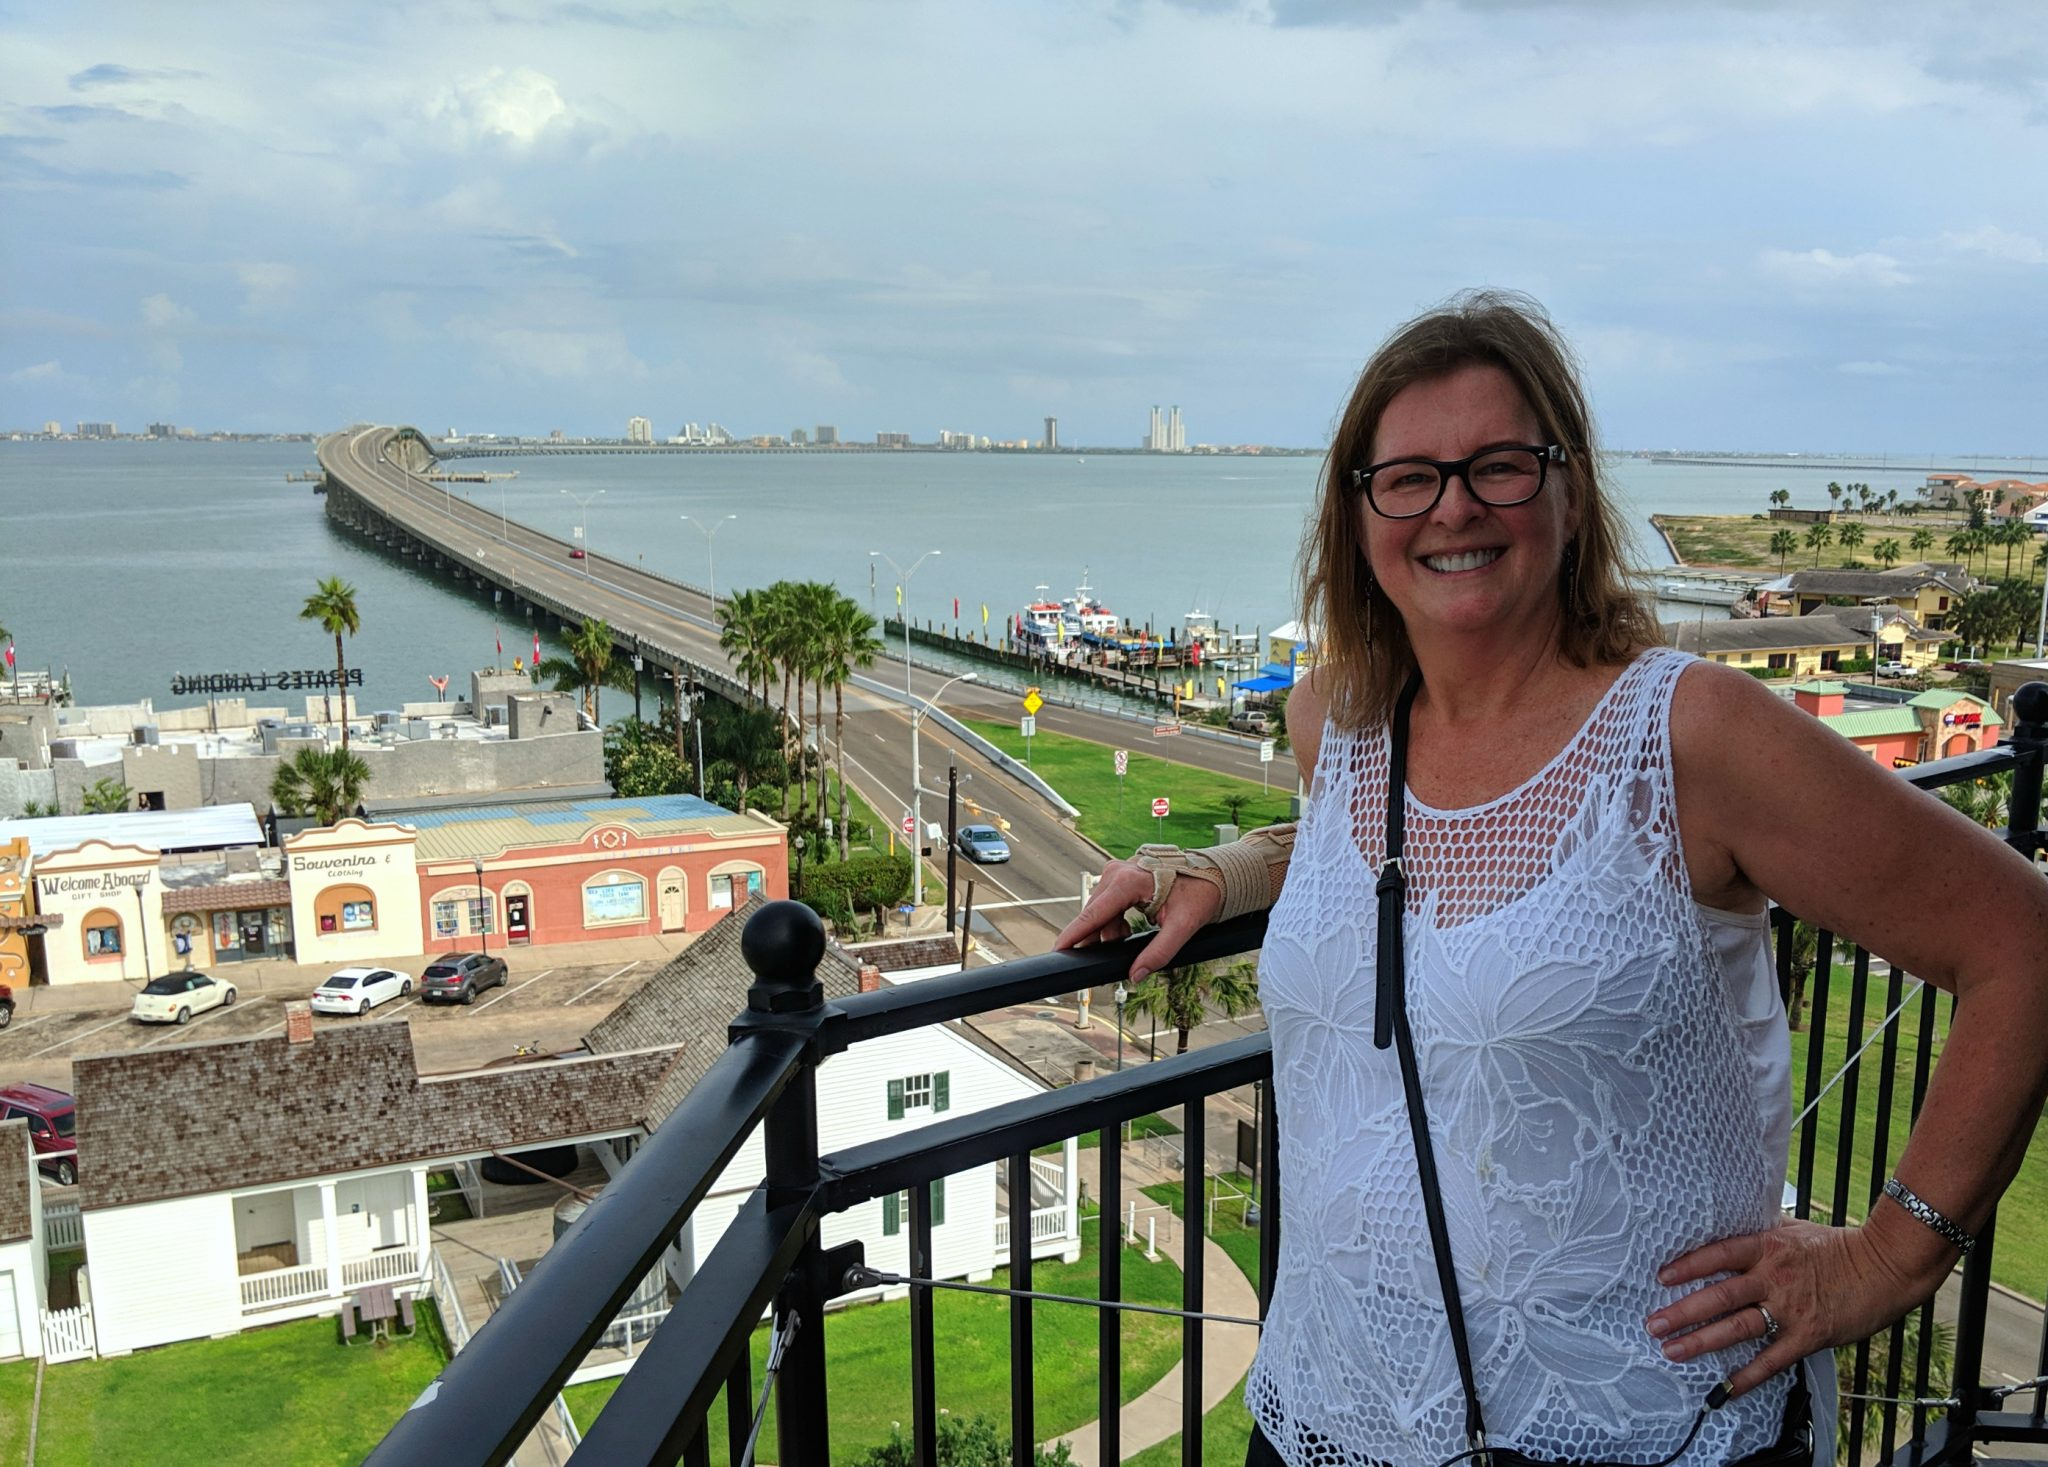 Things to do on South Padre Island Texas - climb the Port Isabel lighthouse.